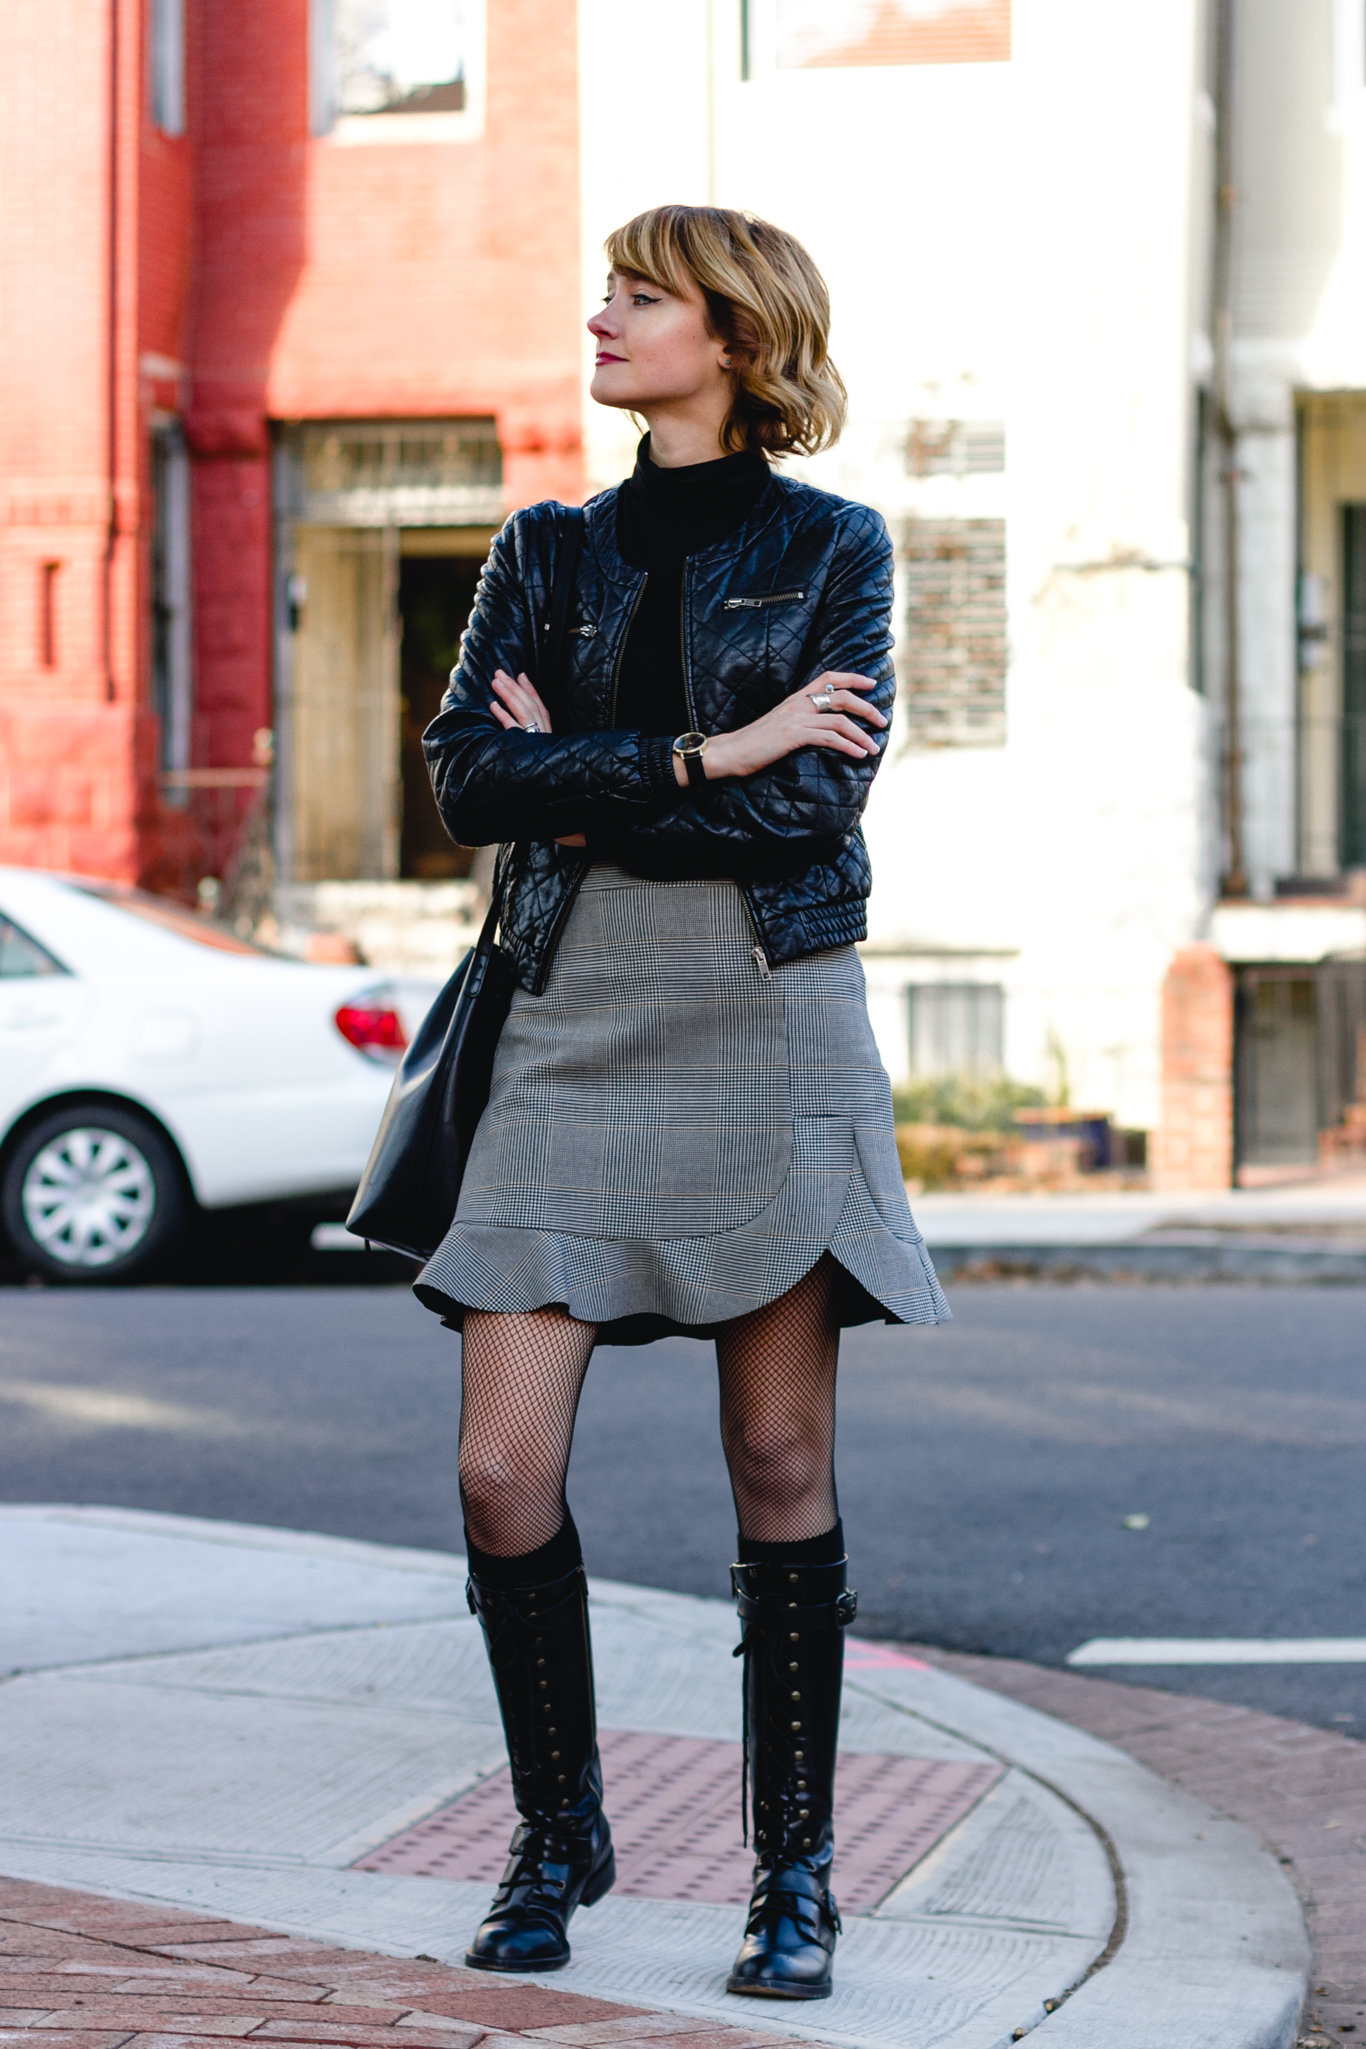 Zara plaid skirt and DKNY combat boots